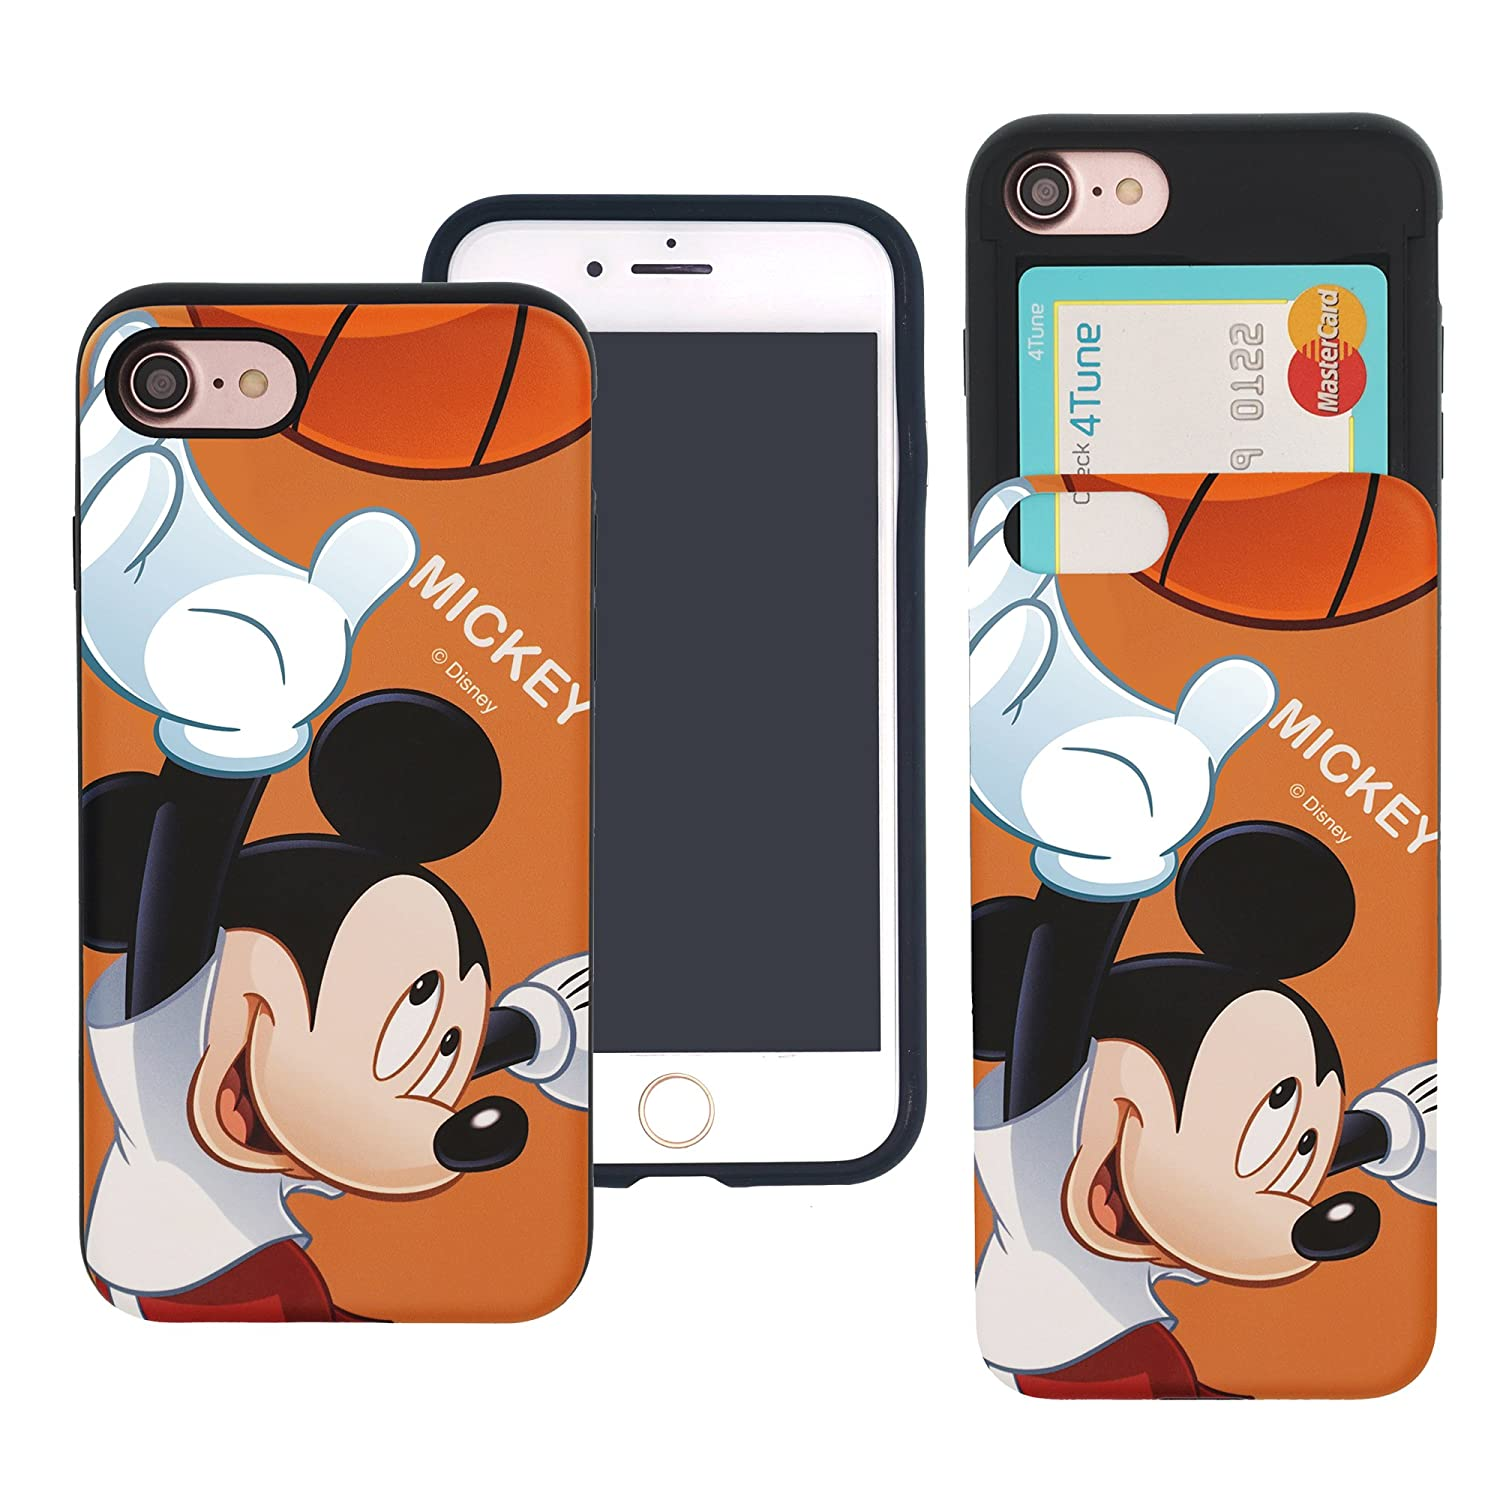 iPhone 6S Plus/iPhone 6 Plus Case Disney Cute Slim Slider Cover : Card Slot Shock Absorption Dual Layer Holder Bumper for [ iPhone6S Plus / iPhone6 Plus ] Case - Riding Mickey Mouse WiLLBee